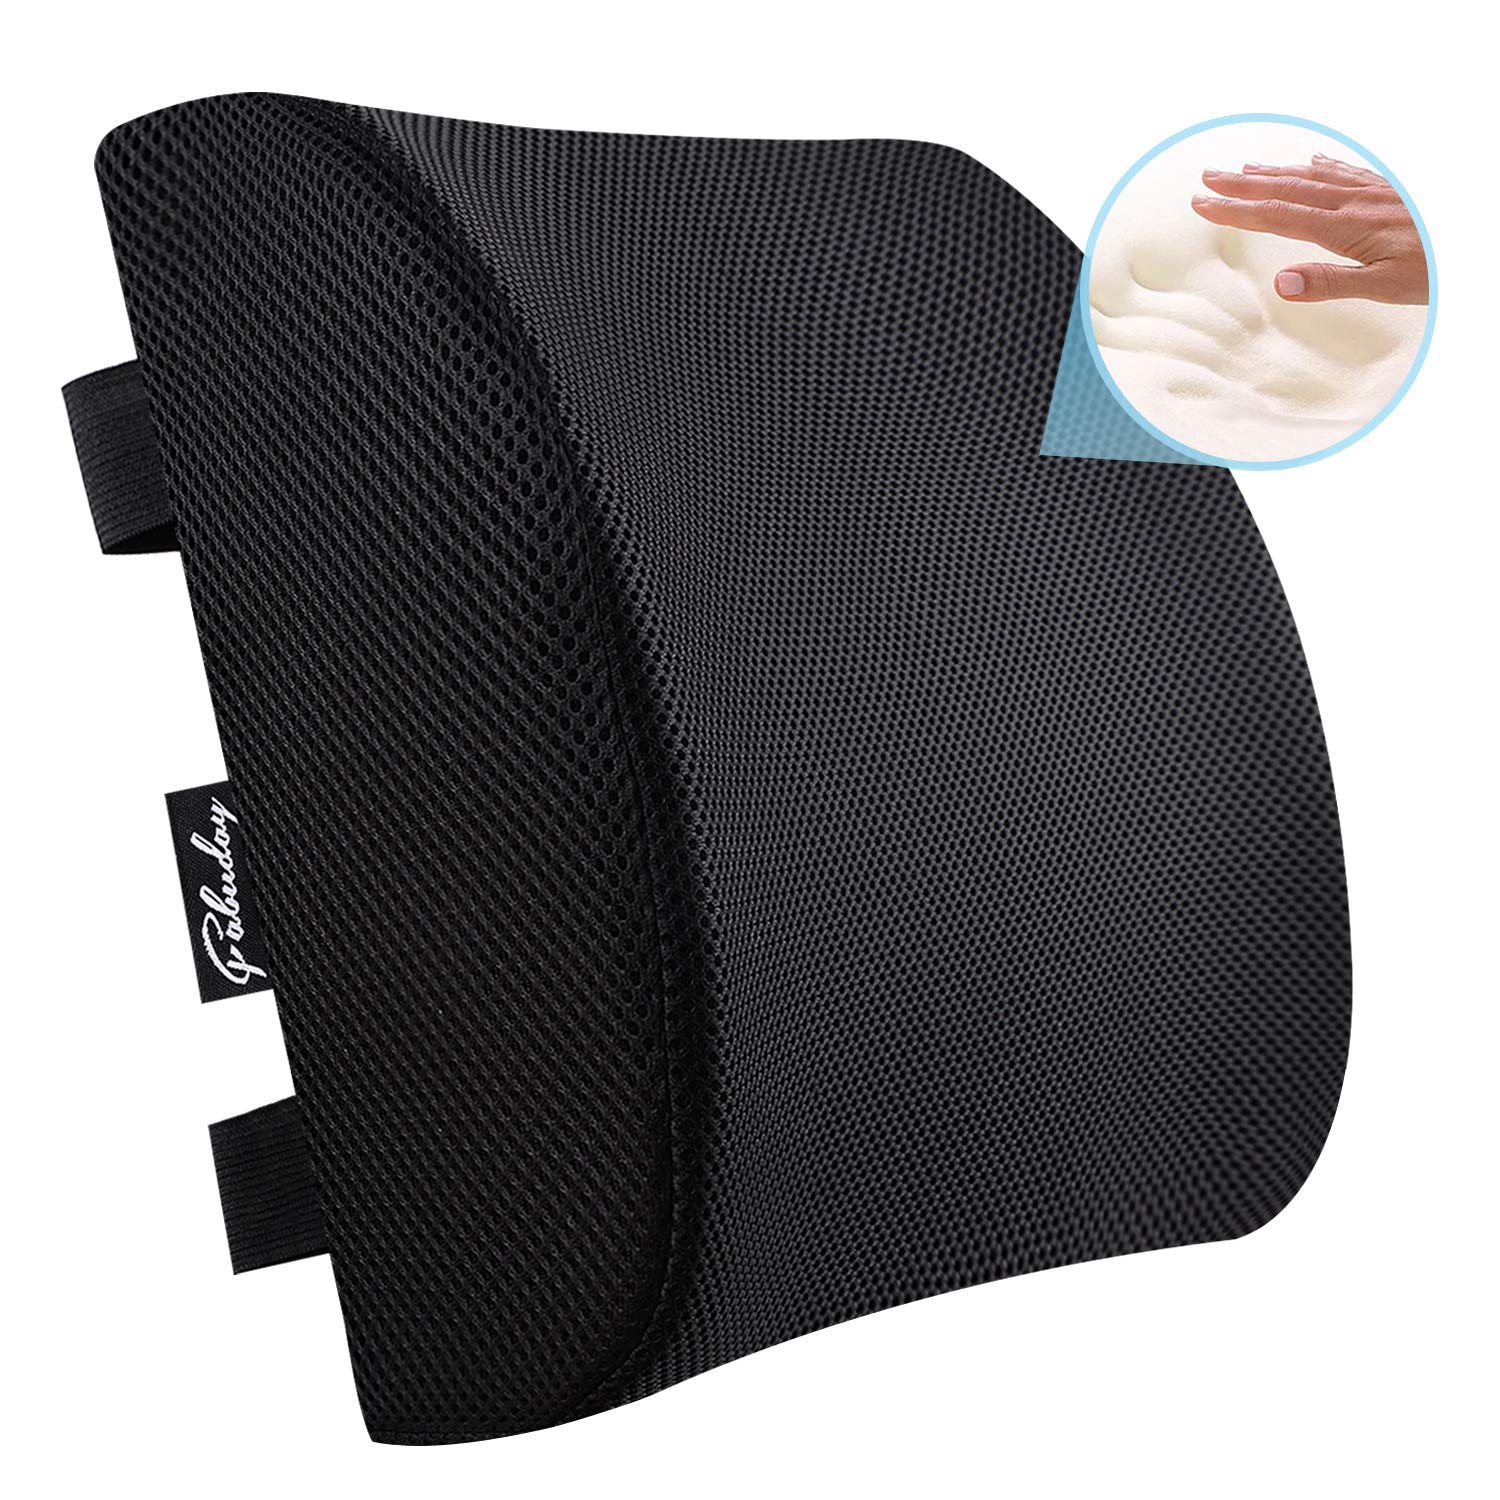 Premium Back Cushion for Office Chair, Car, Wheelchair - Memory Foam Lumbar Support Pillow with Breathable 3D Mesh Cover Adjustable Straps Black